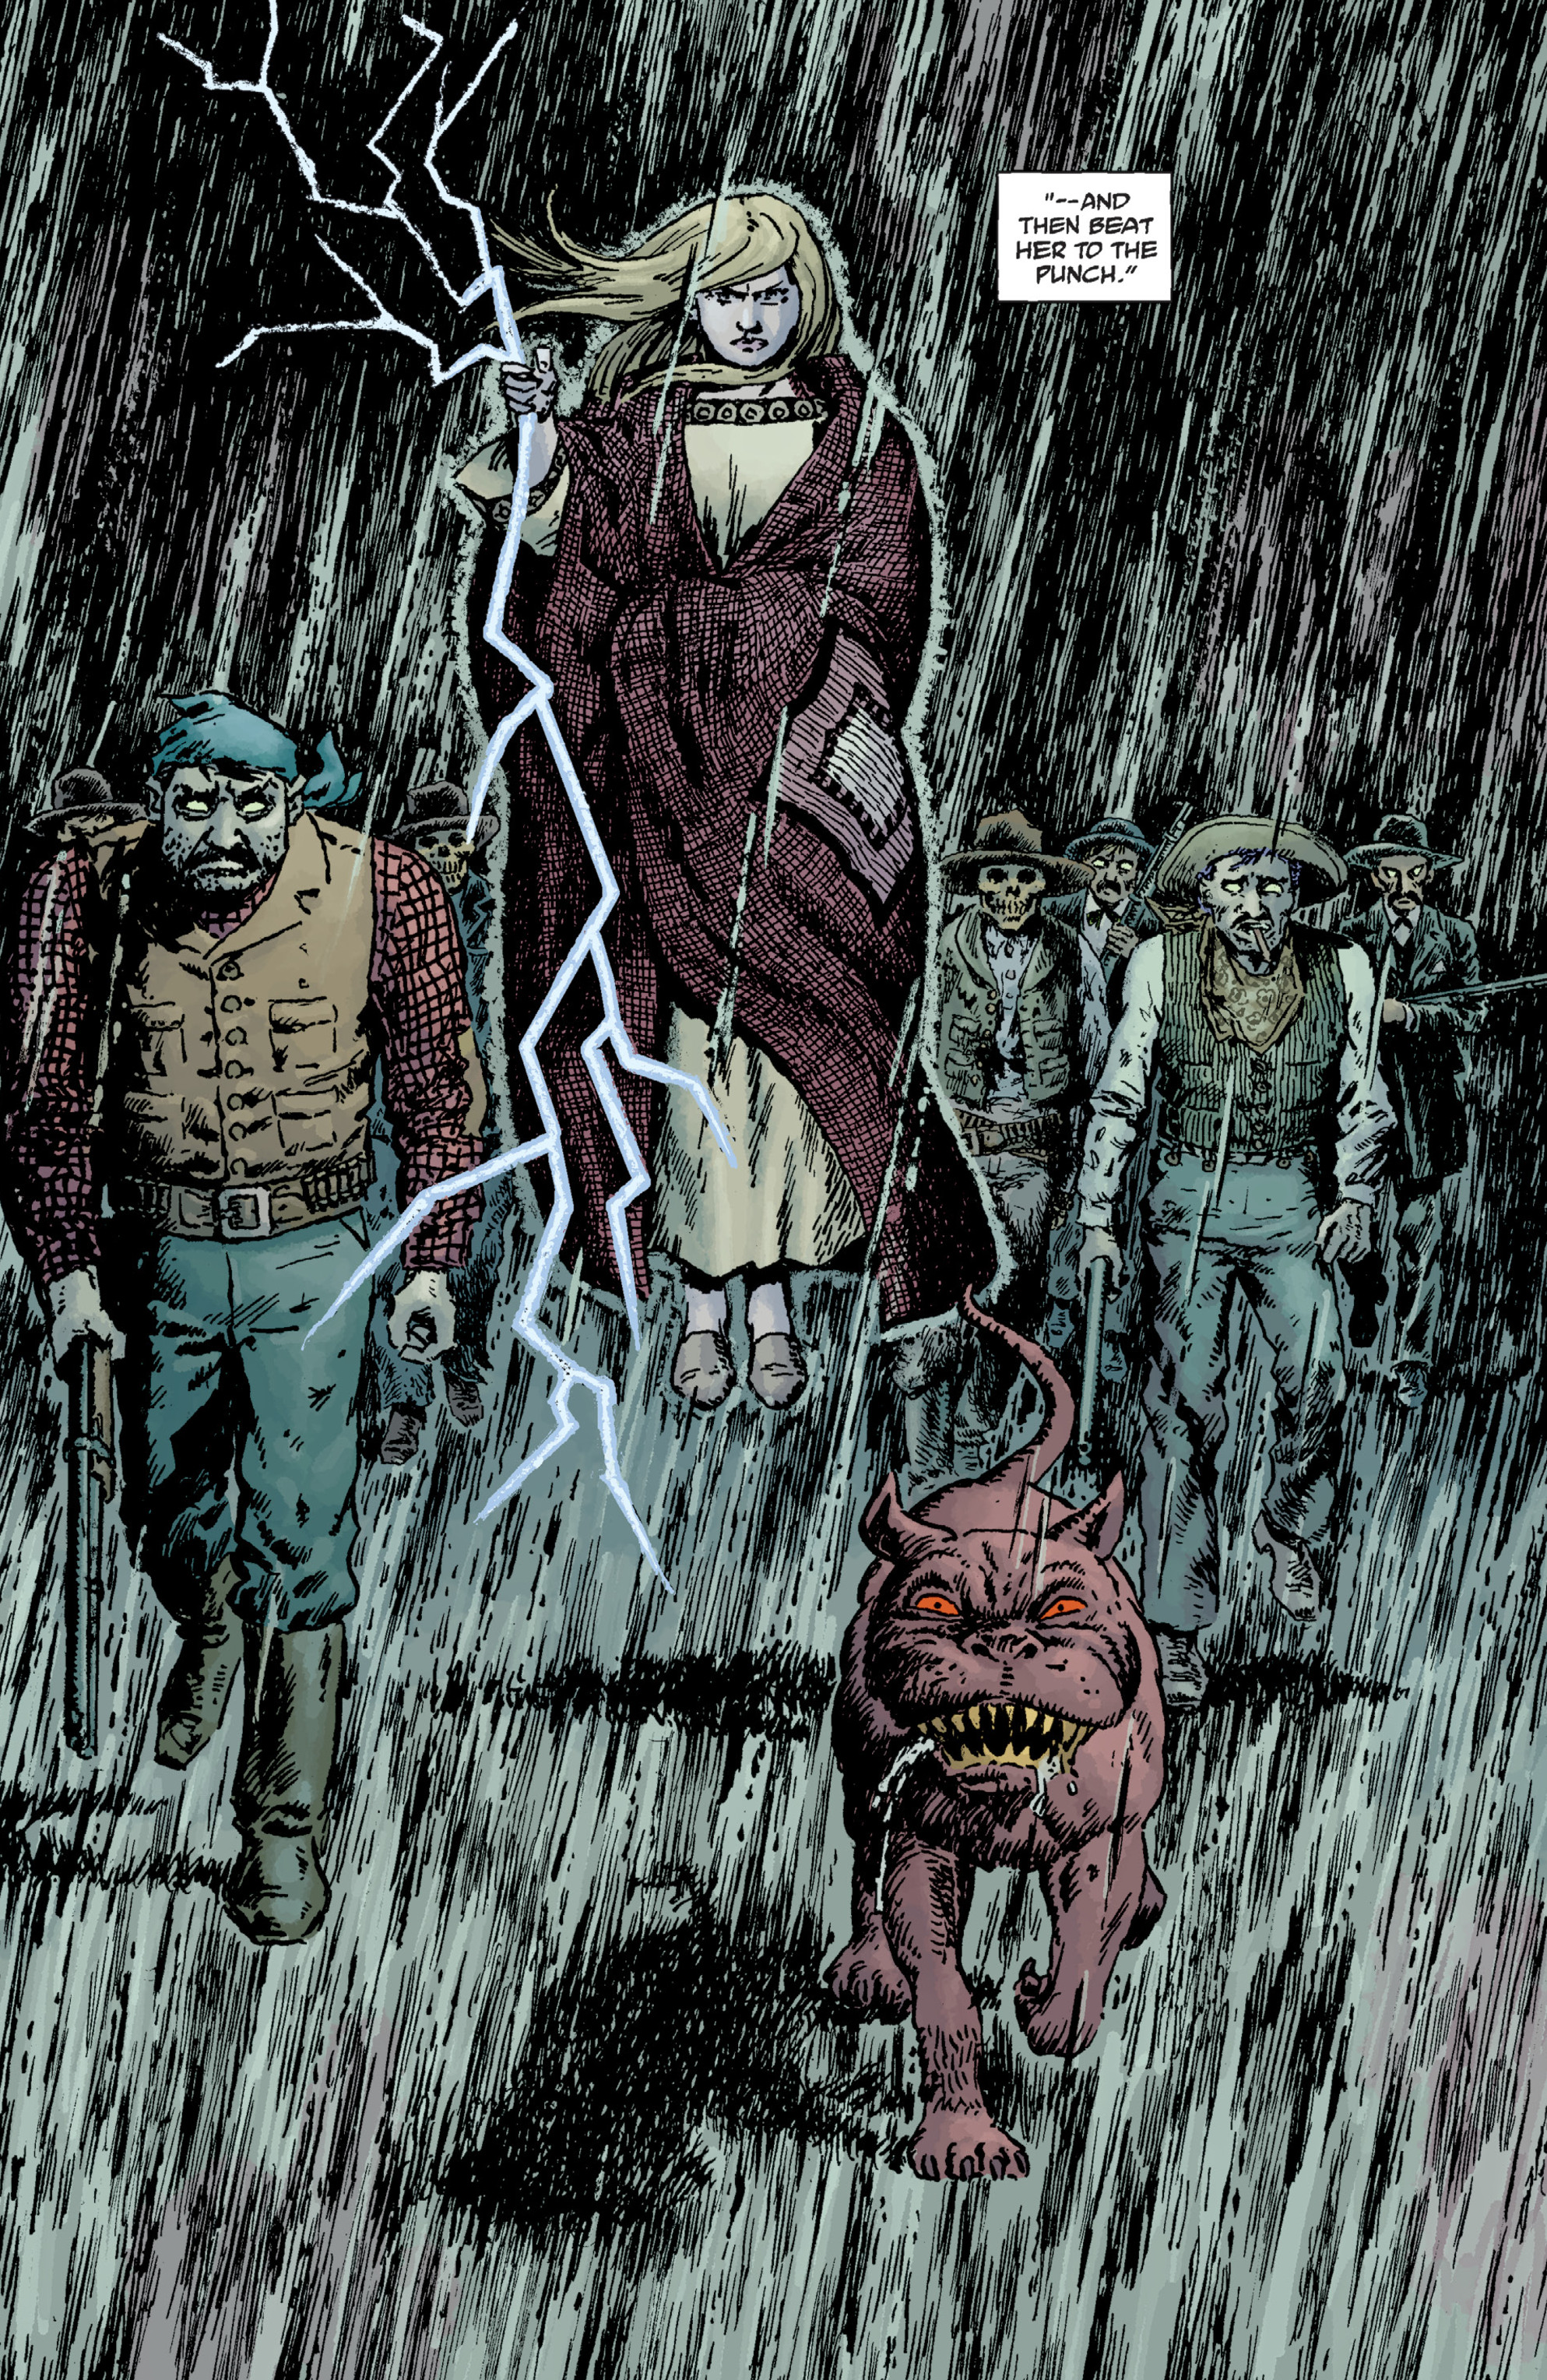 Read online Sir Edward Grey, Witchfinder: Lost and Gone Forever comic -  Issue # TPB - 98